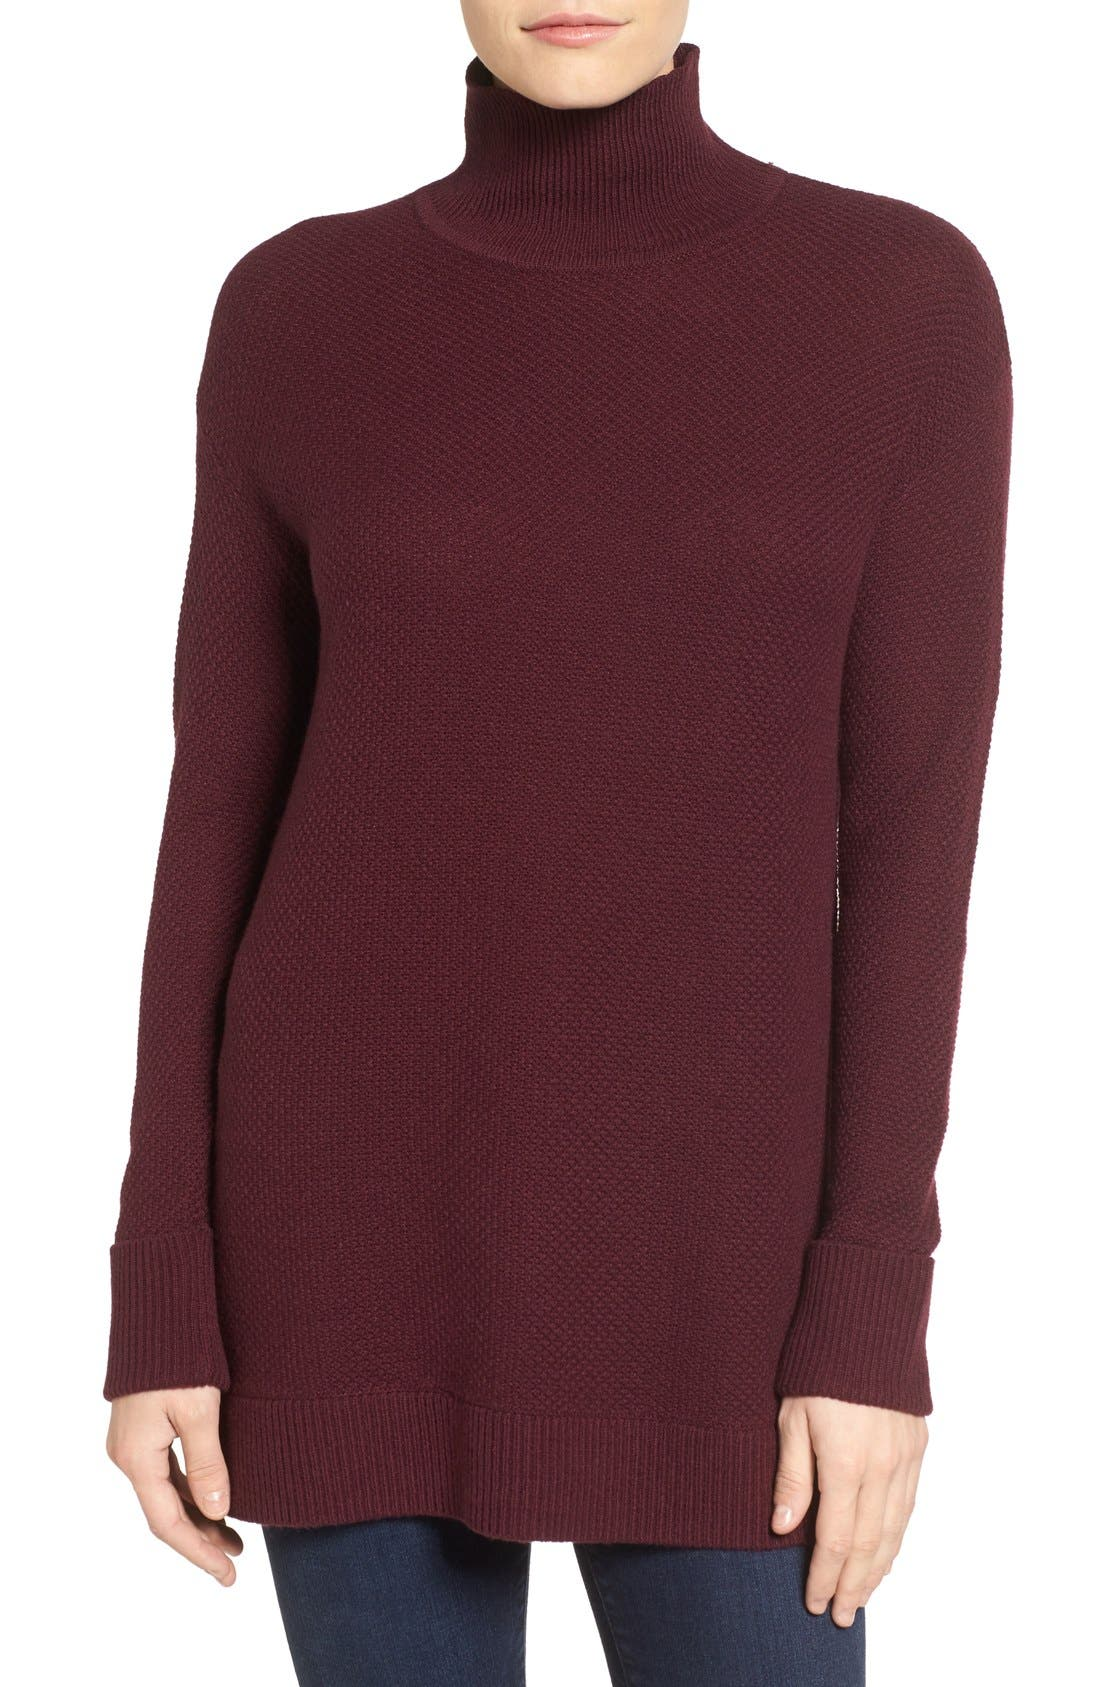 Alternate Image 1 Selected - Halogen® Mock Turtleneck Sweater (Regular & Petite)